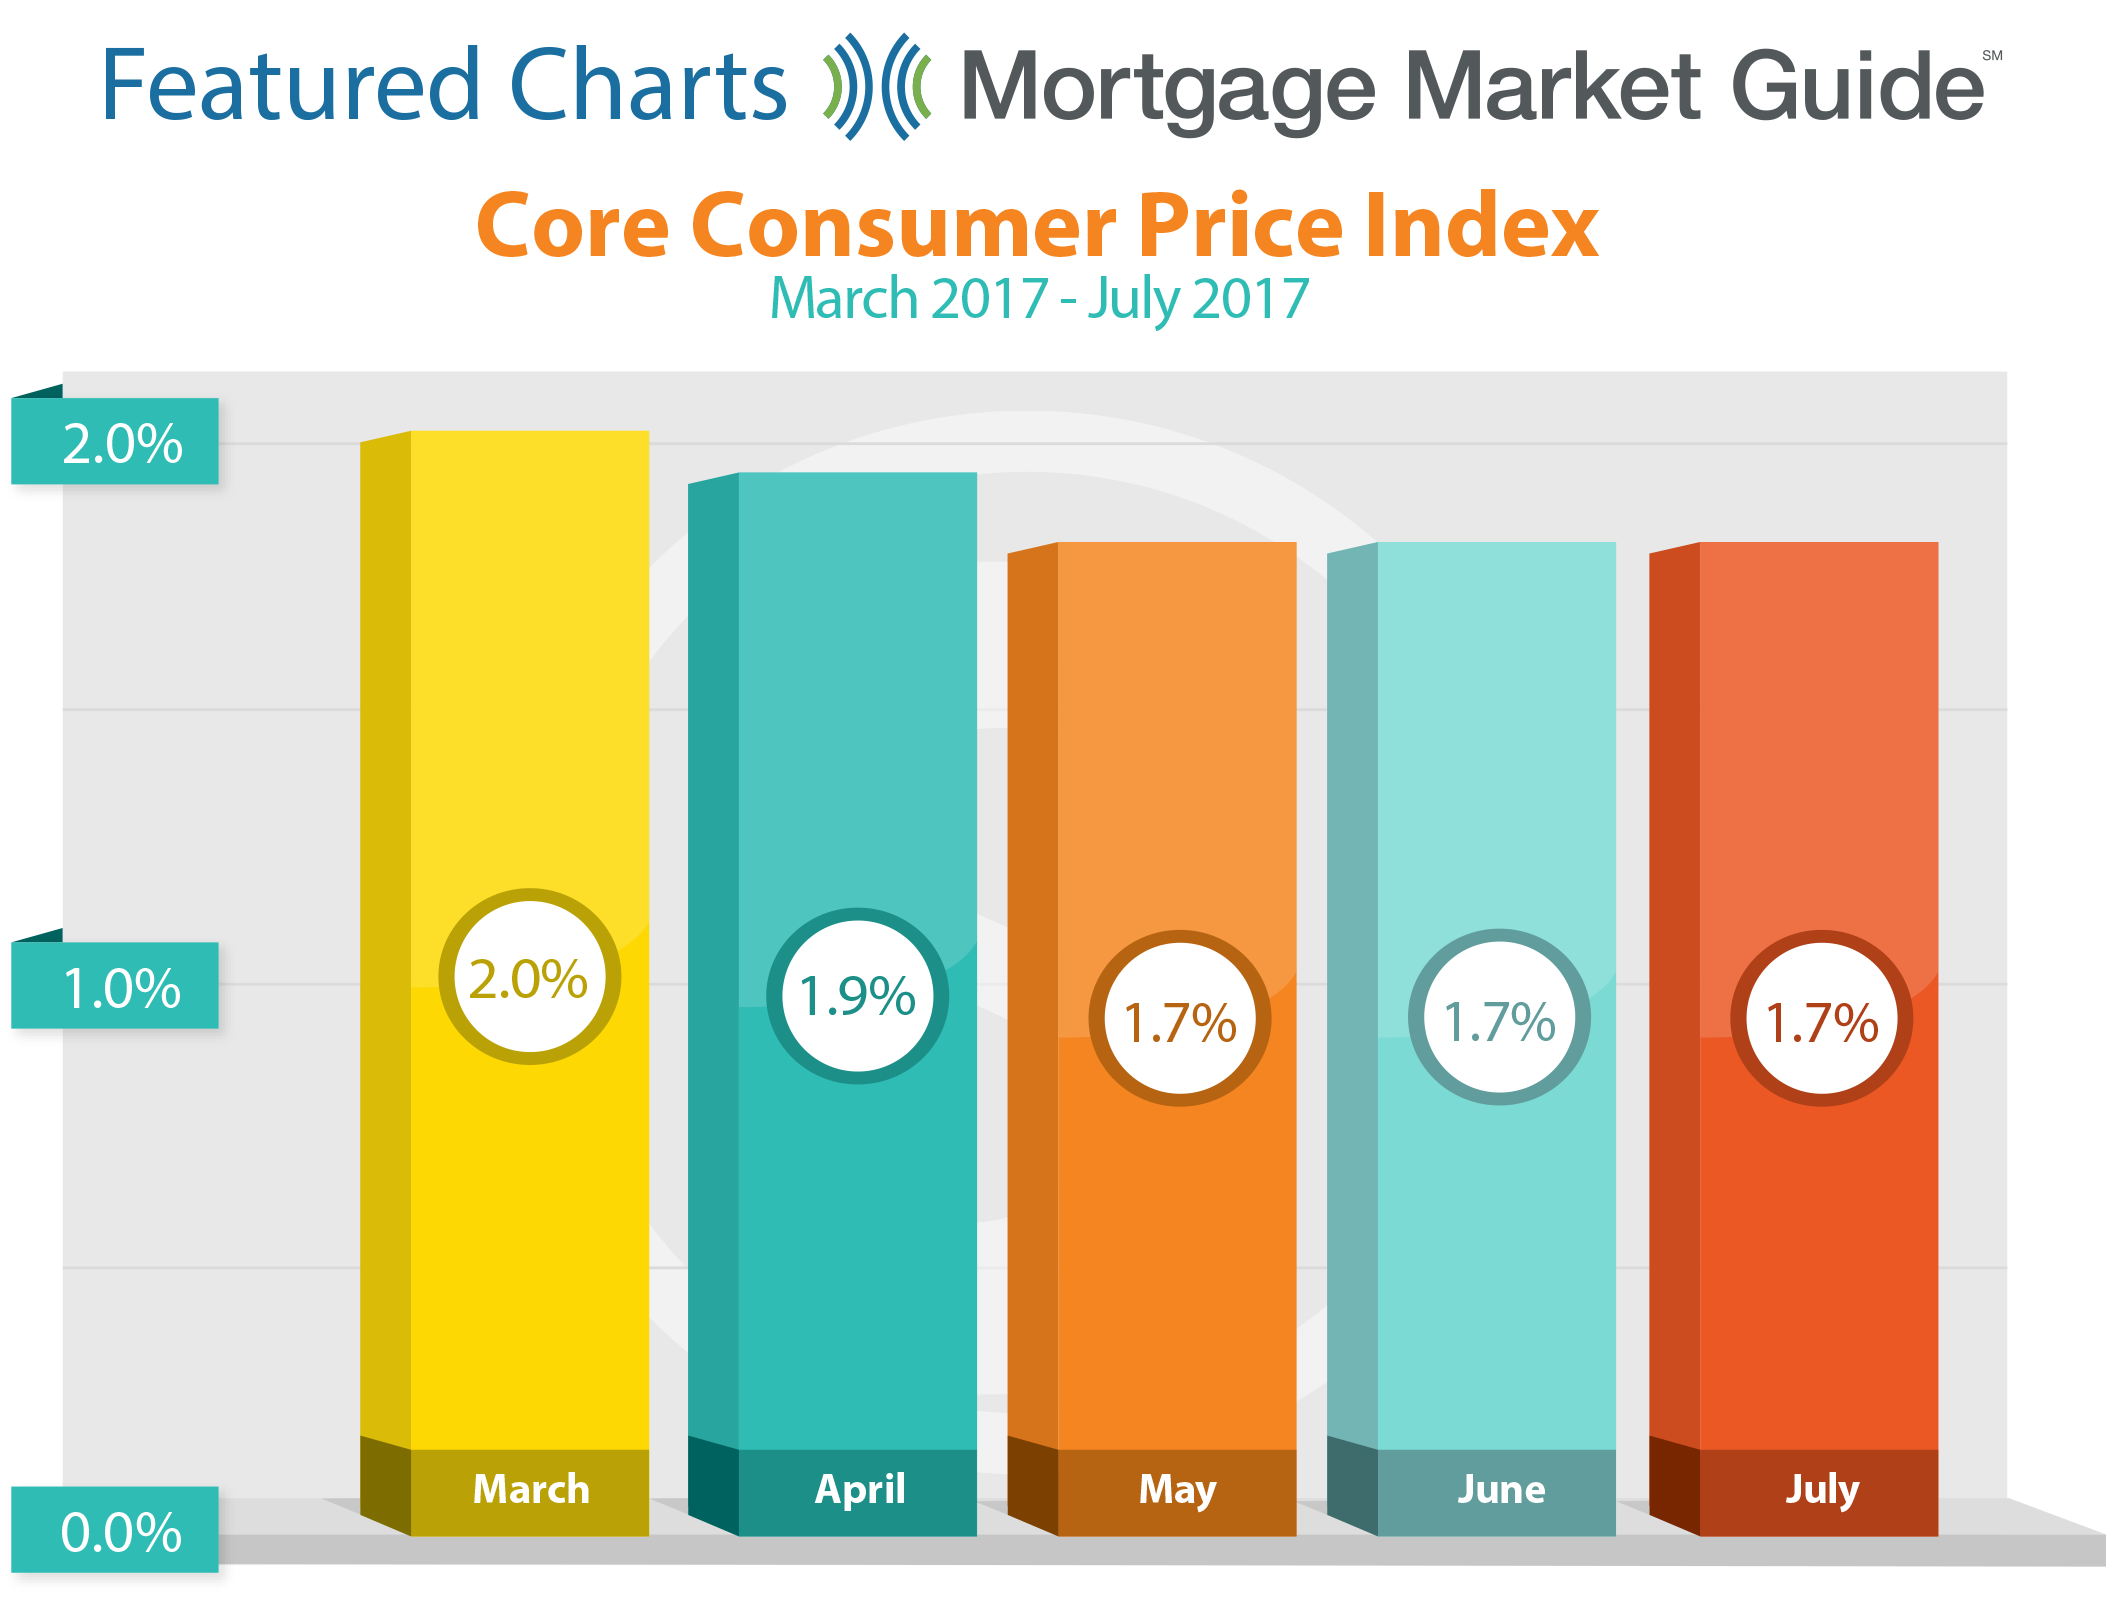 CORE CONSUMER PRICE INDEX: MARCH – JULY 2017